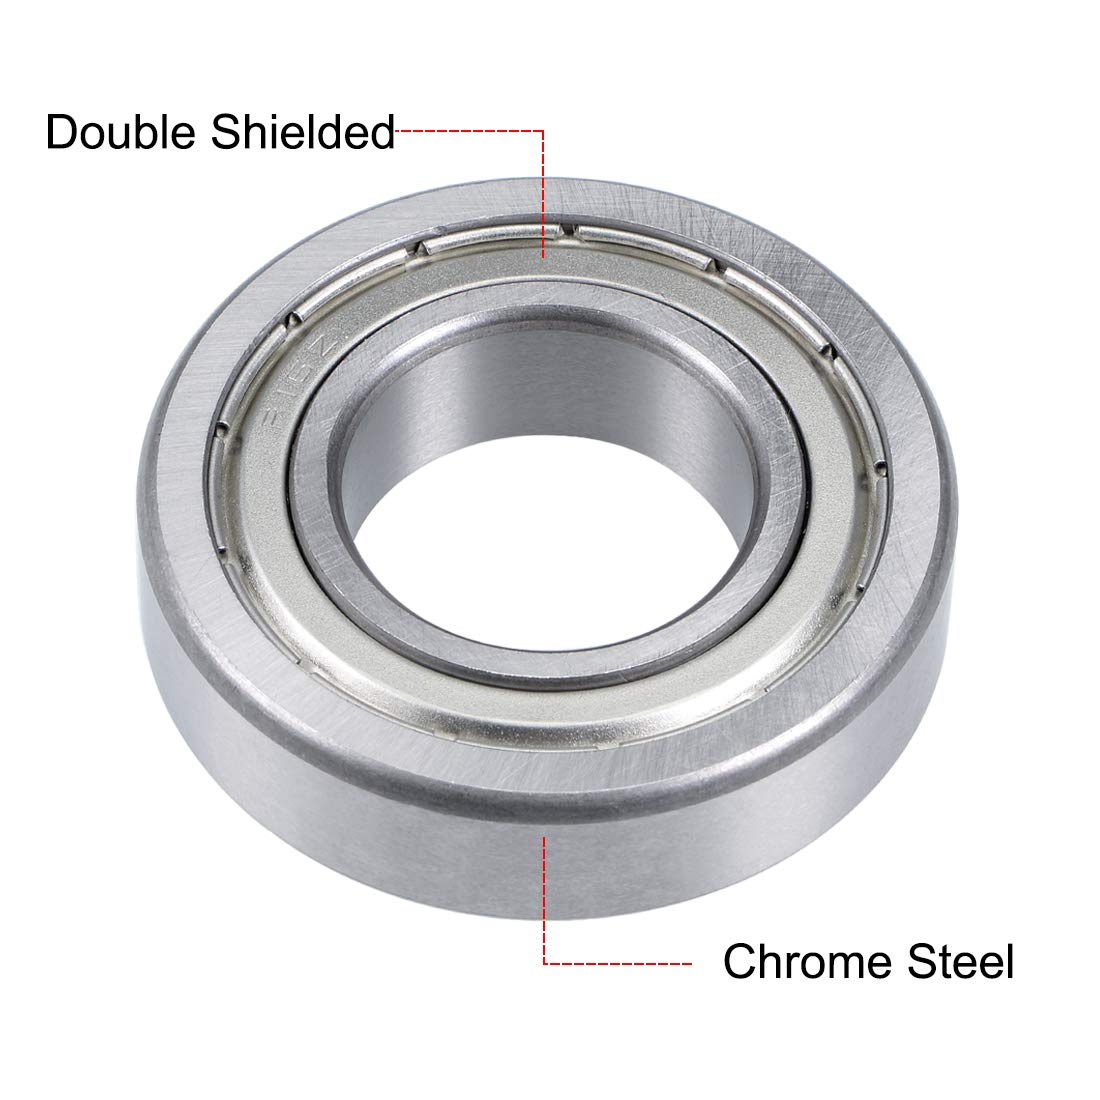 sourcing map R1-5ZZ Deep Groove Ball Bearing 3//32x5//16x9//64 Double Shielded Chrome Steel Bearings 2-Pack